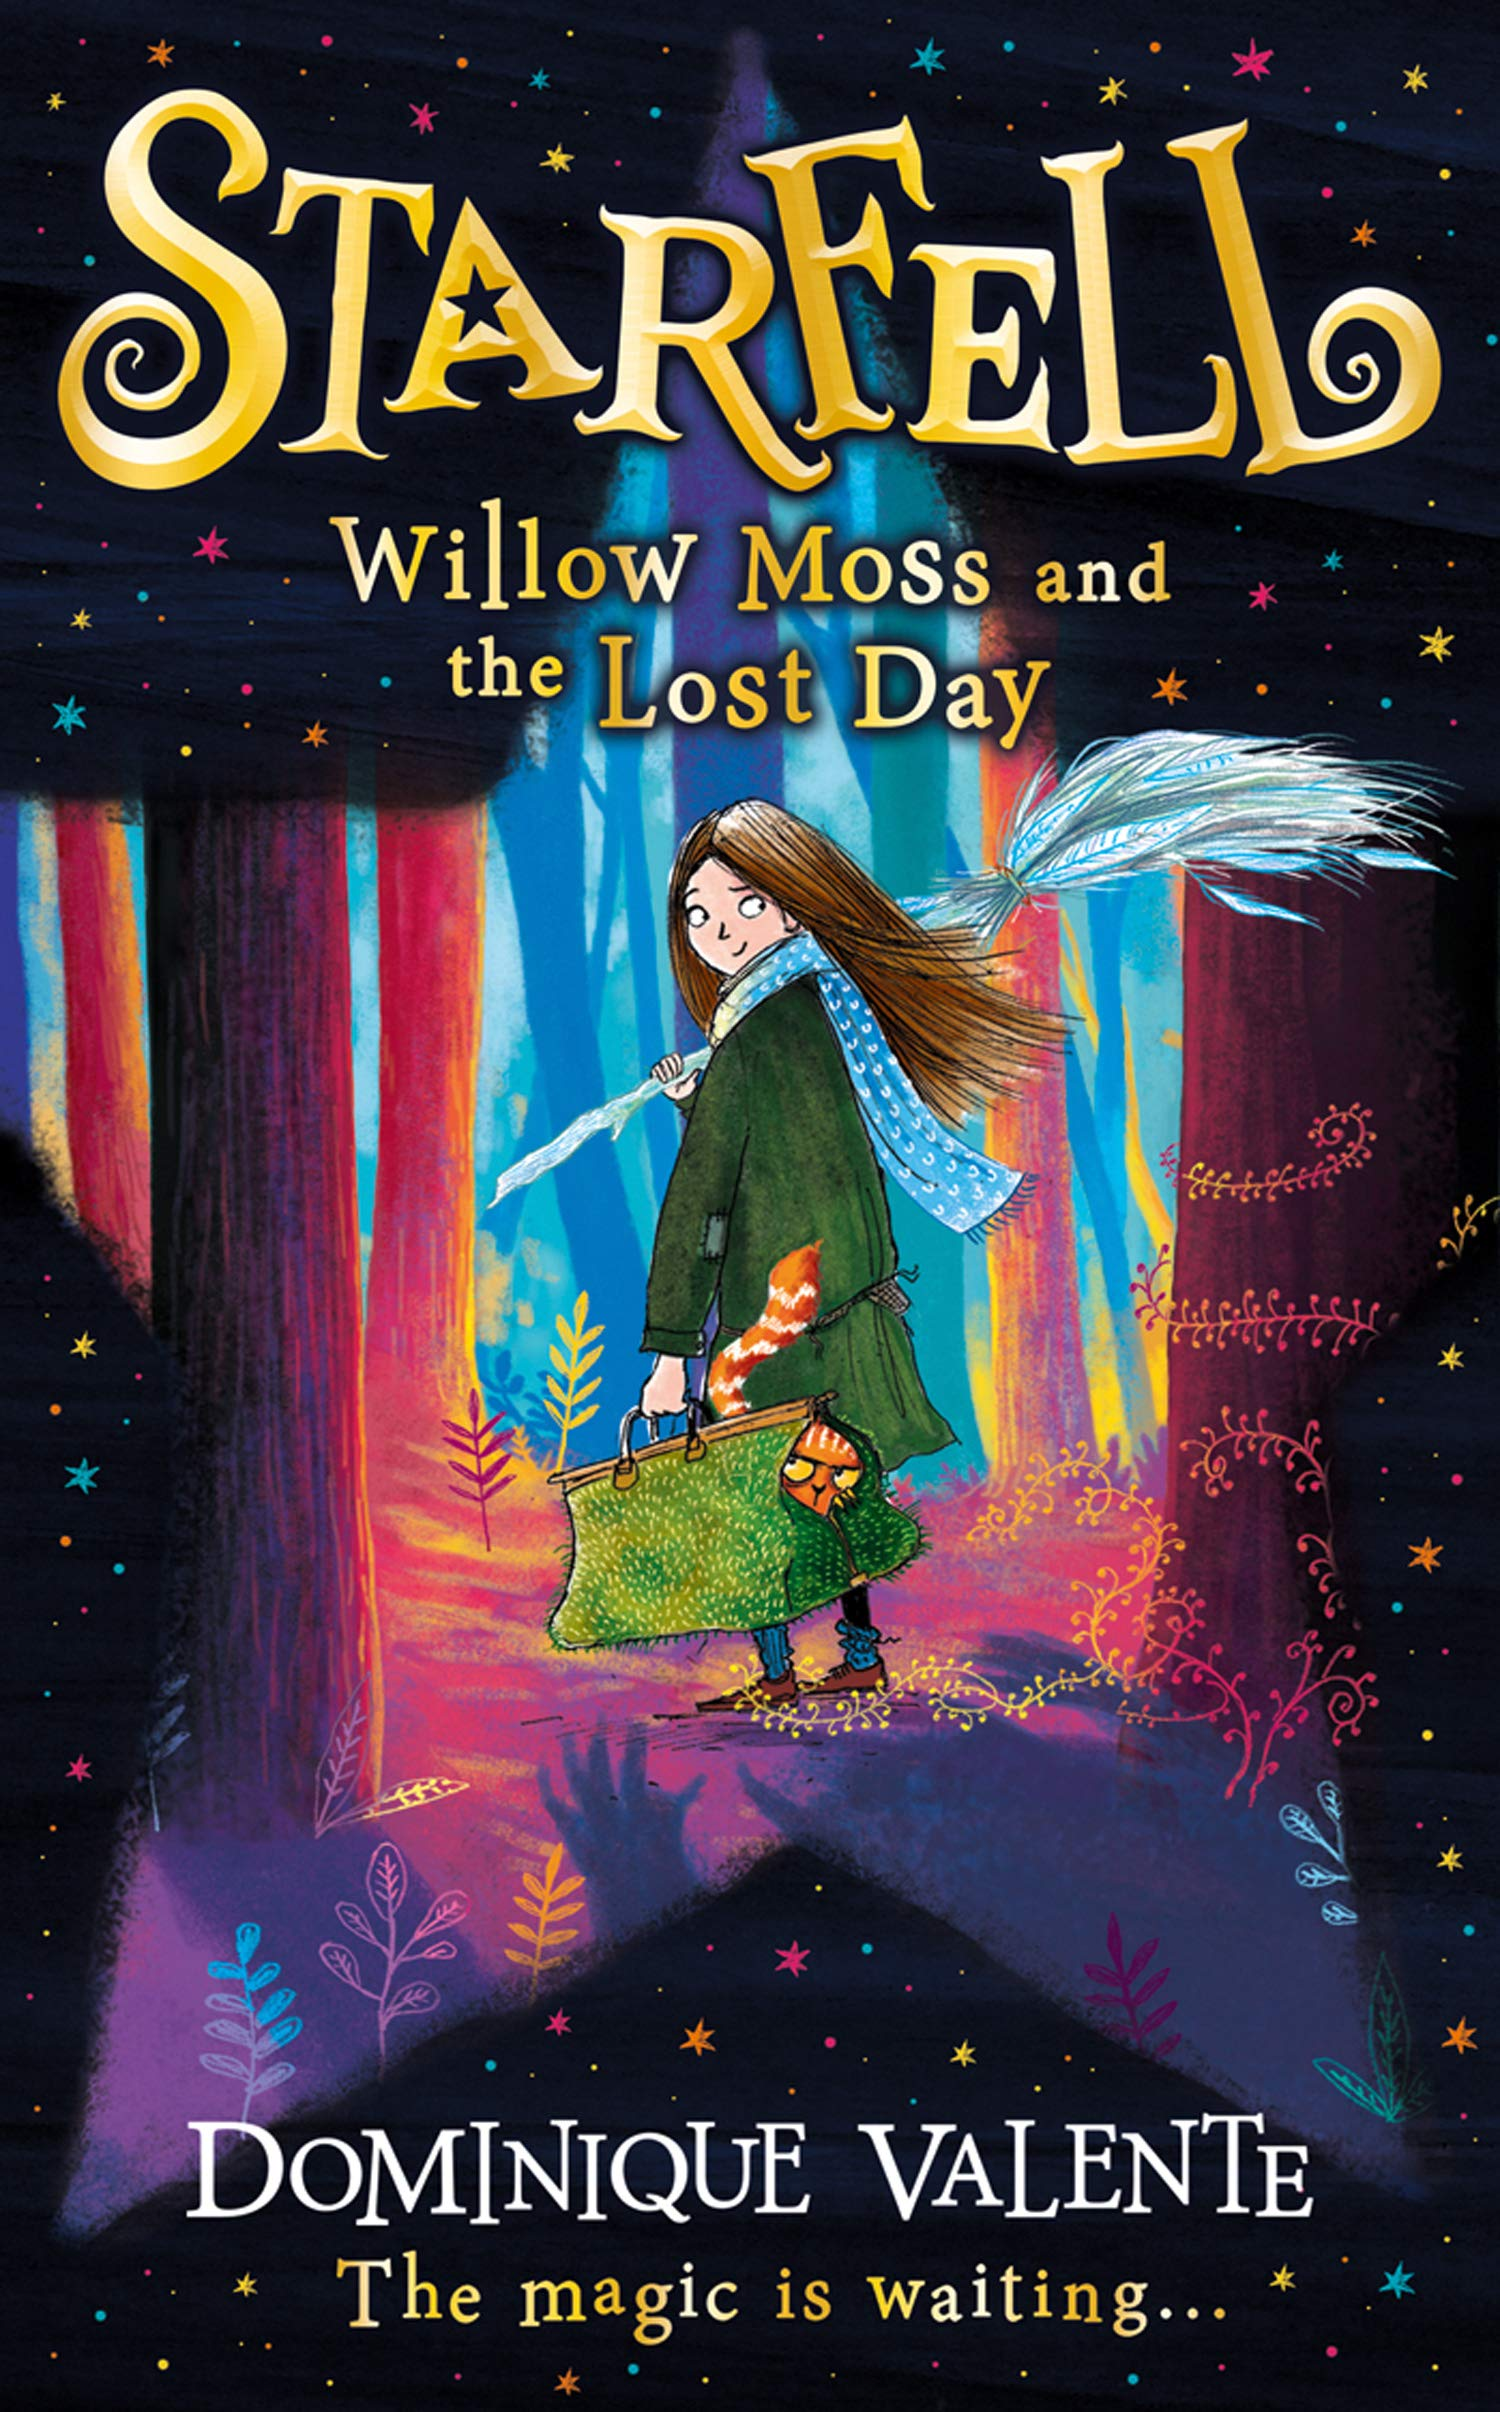 Cover: Dominique Valente Starfell - Willow Moss and the lost day